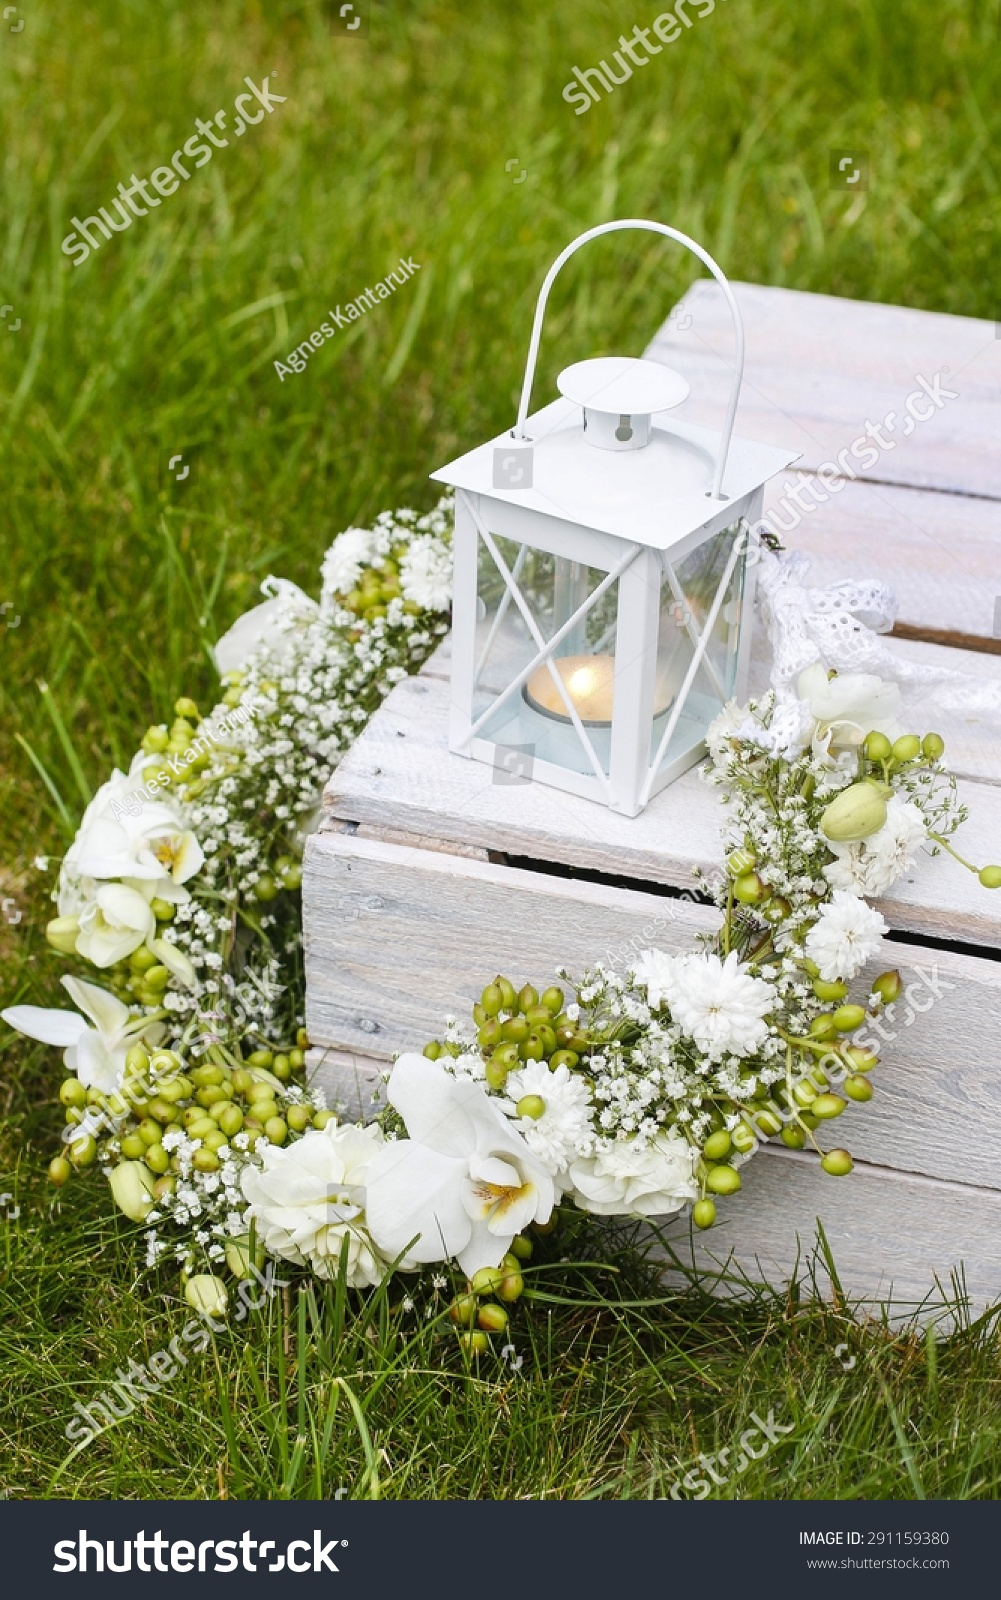 Garden Party Decorations Flower Wreath Orchids Stock Photo 291159380 ...